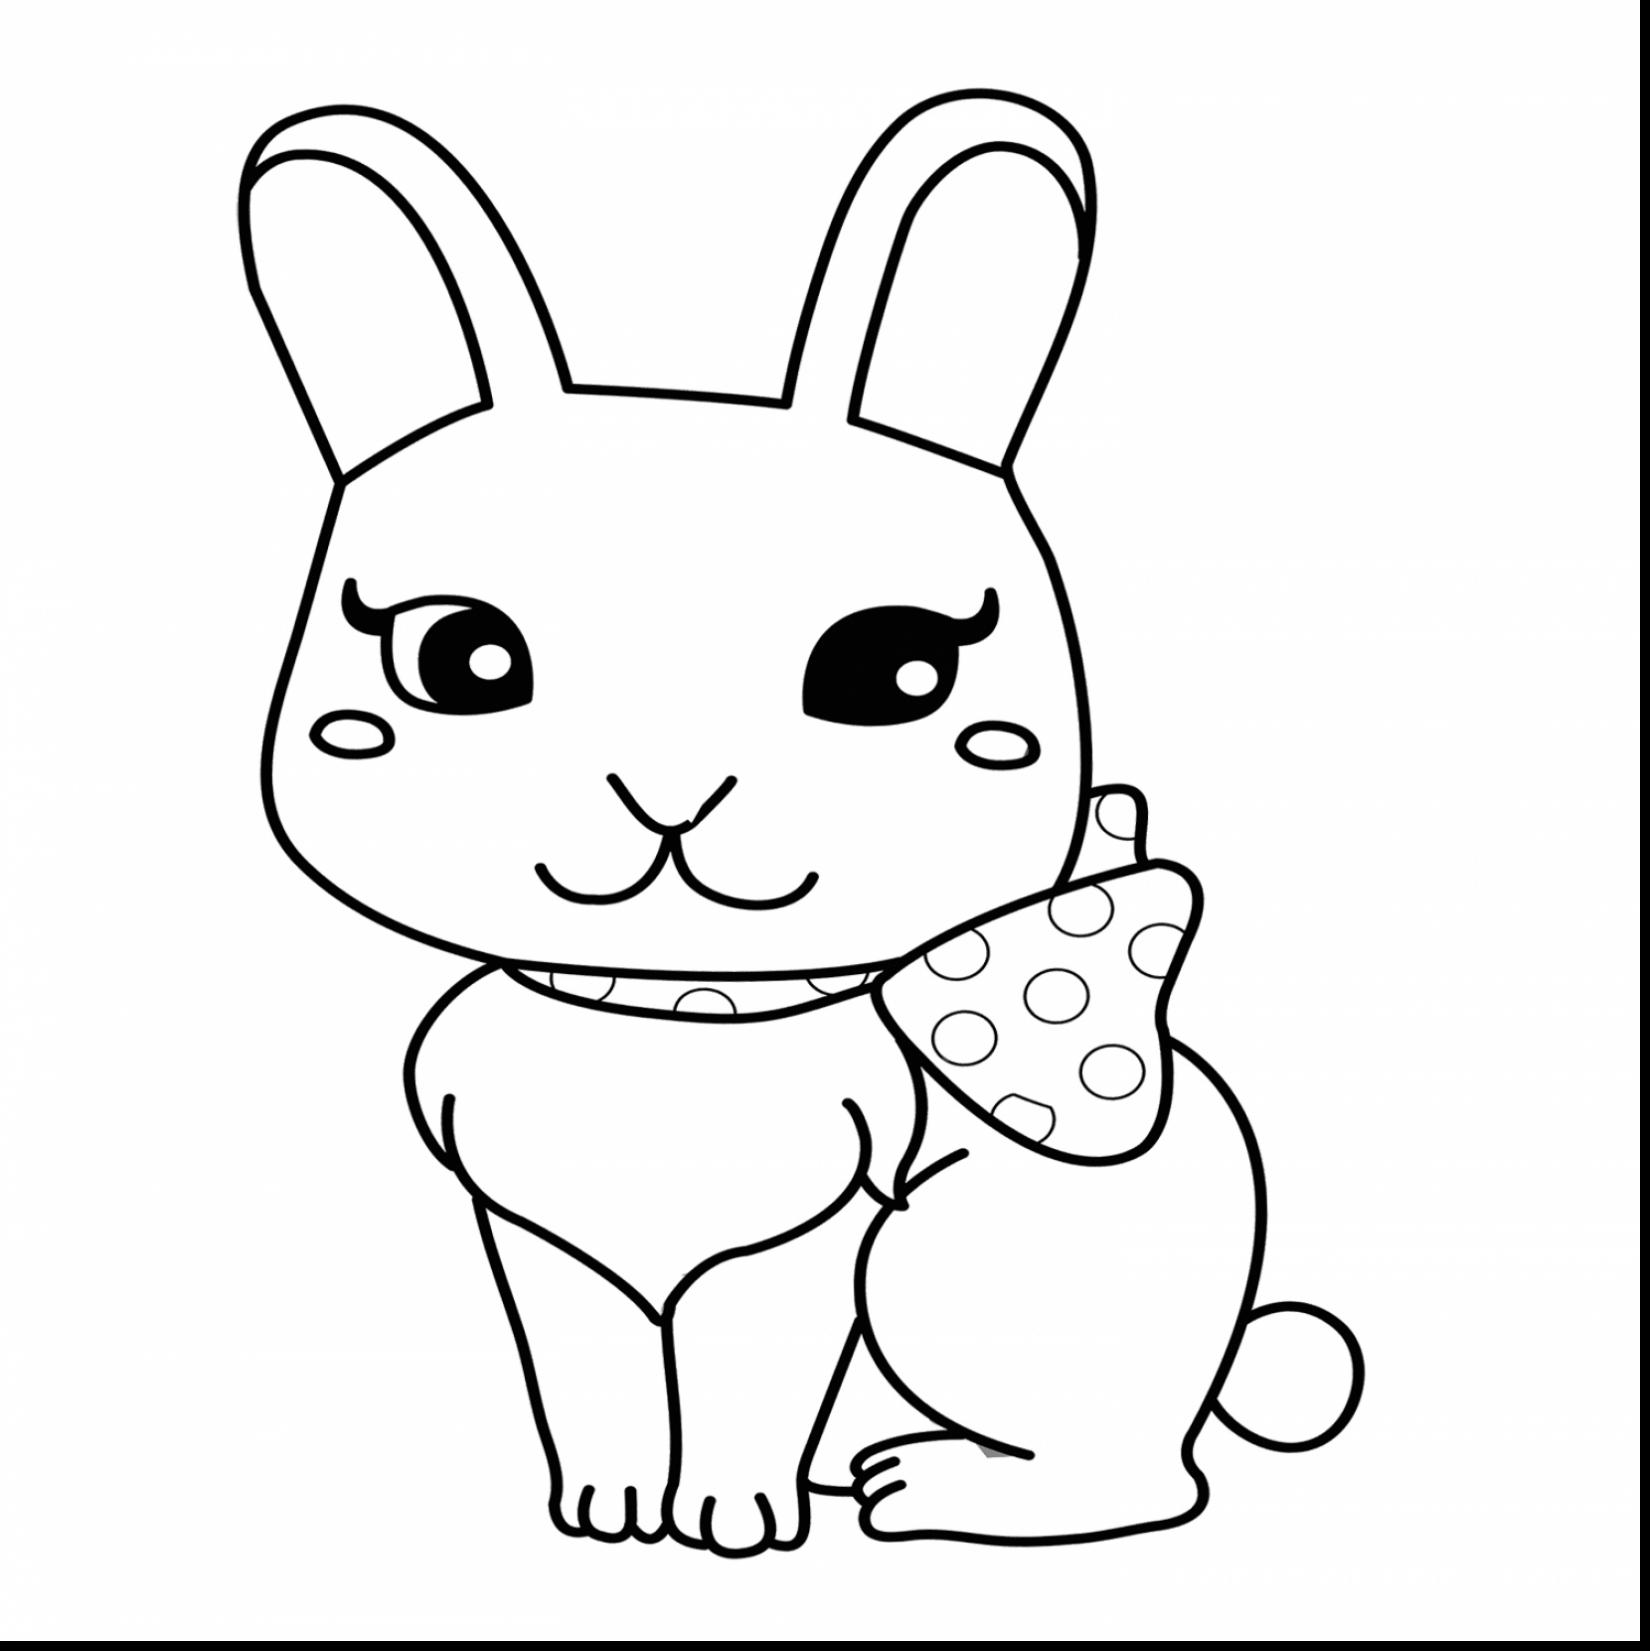 1650x1651 Unbelievable Bunny Rabbit Coloring Pages For Kids With